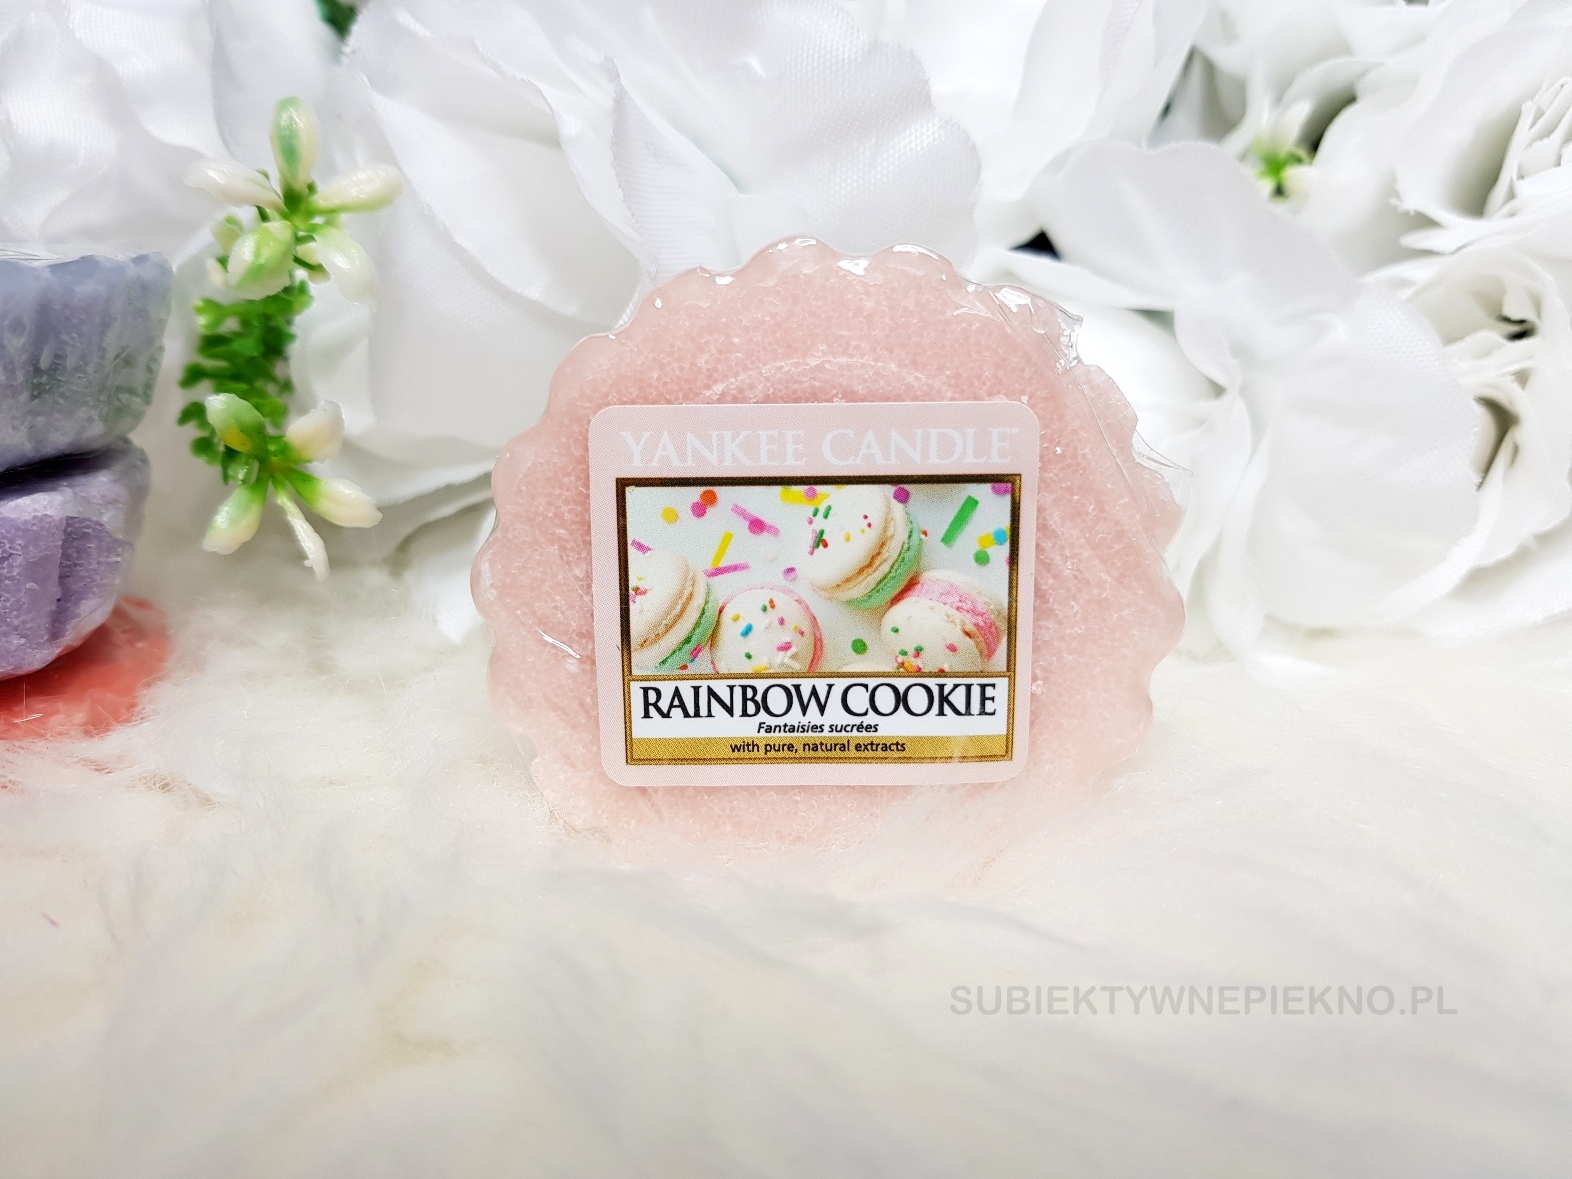 Rainbow Cookie i Sweet Nothings Yankee Candle | Kolekcja Q1 2018 Enjoy the Simple Things